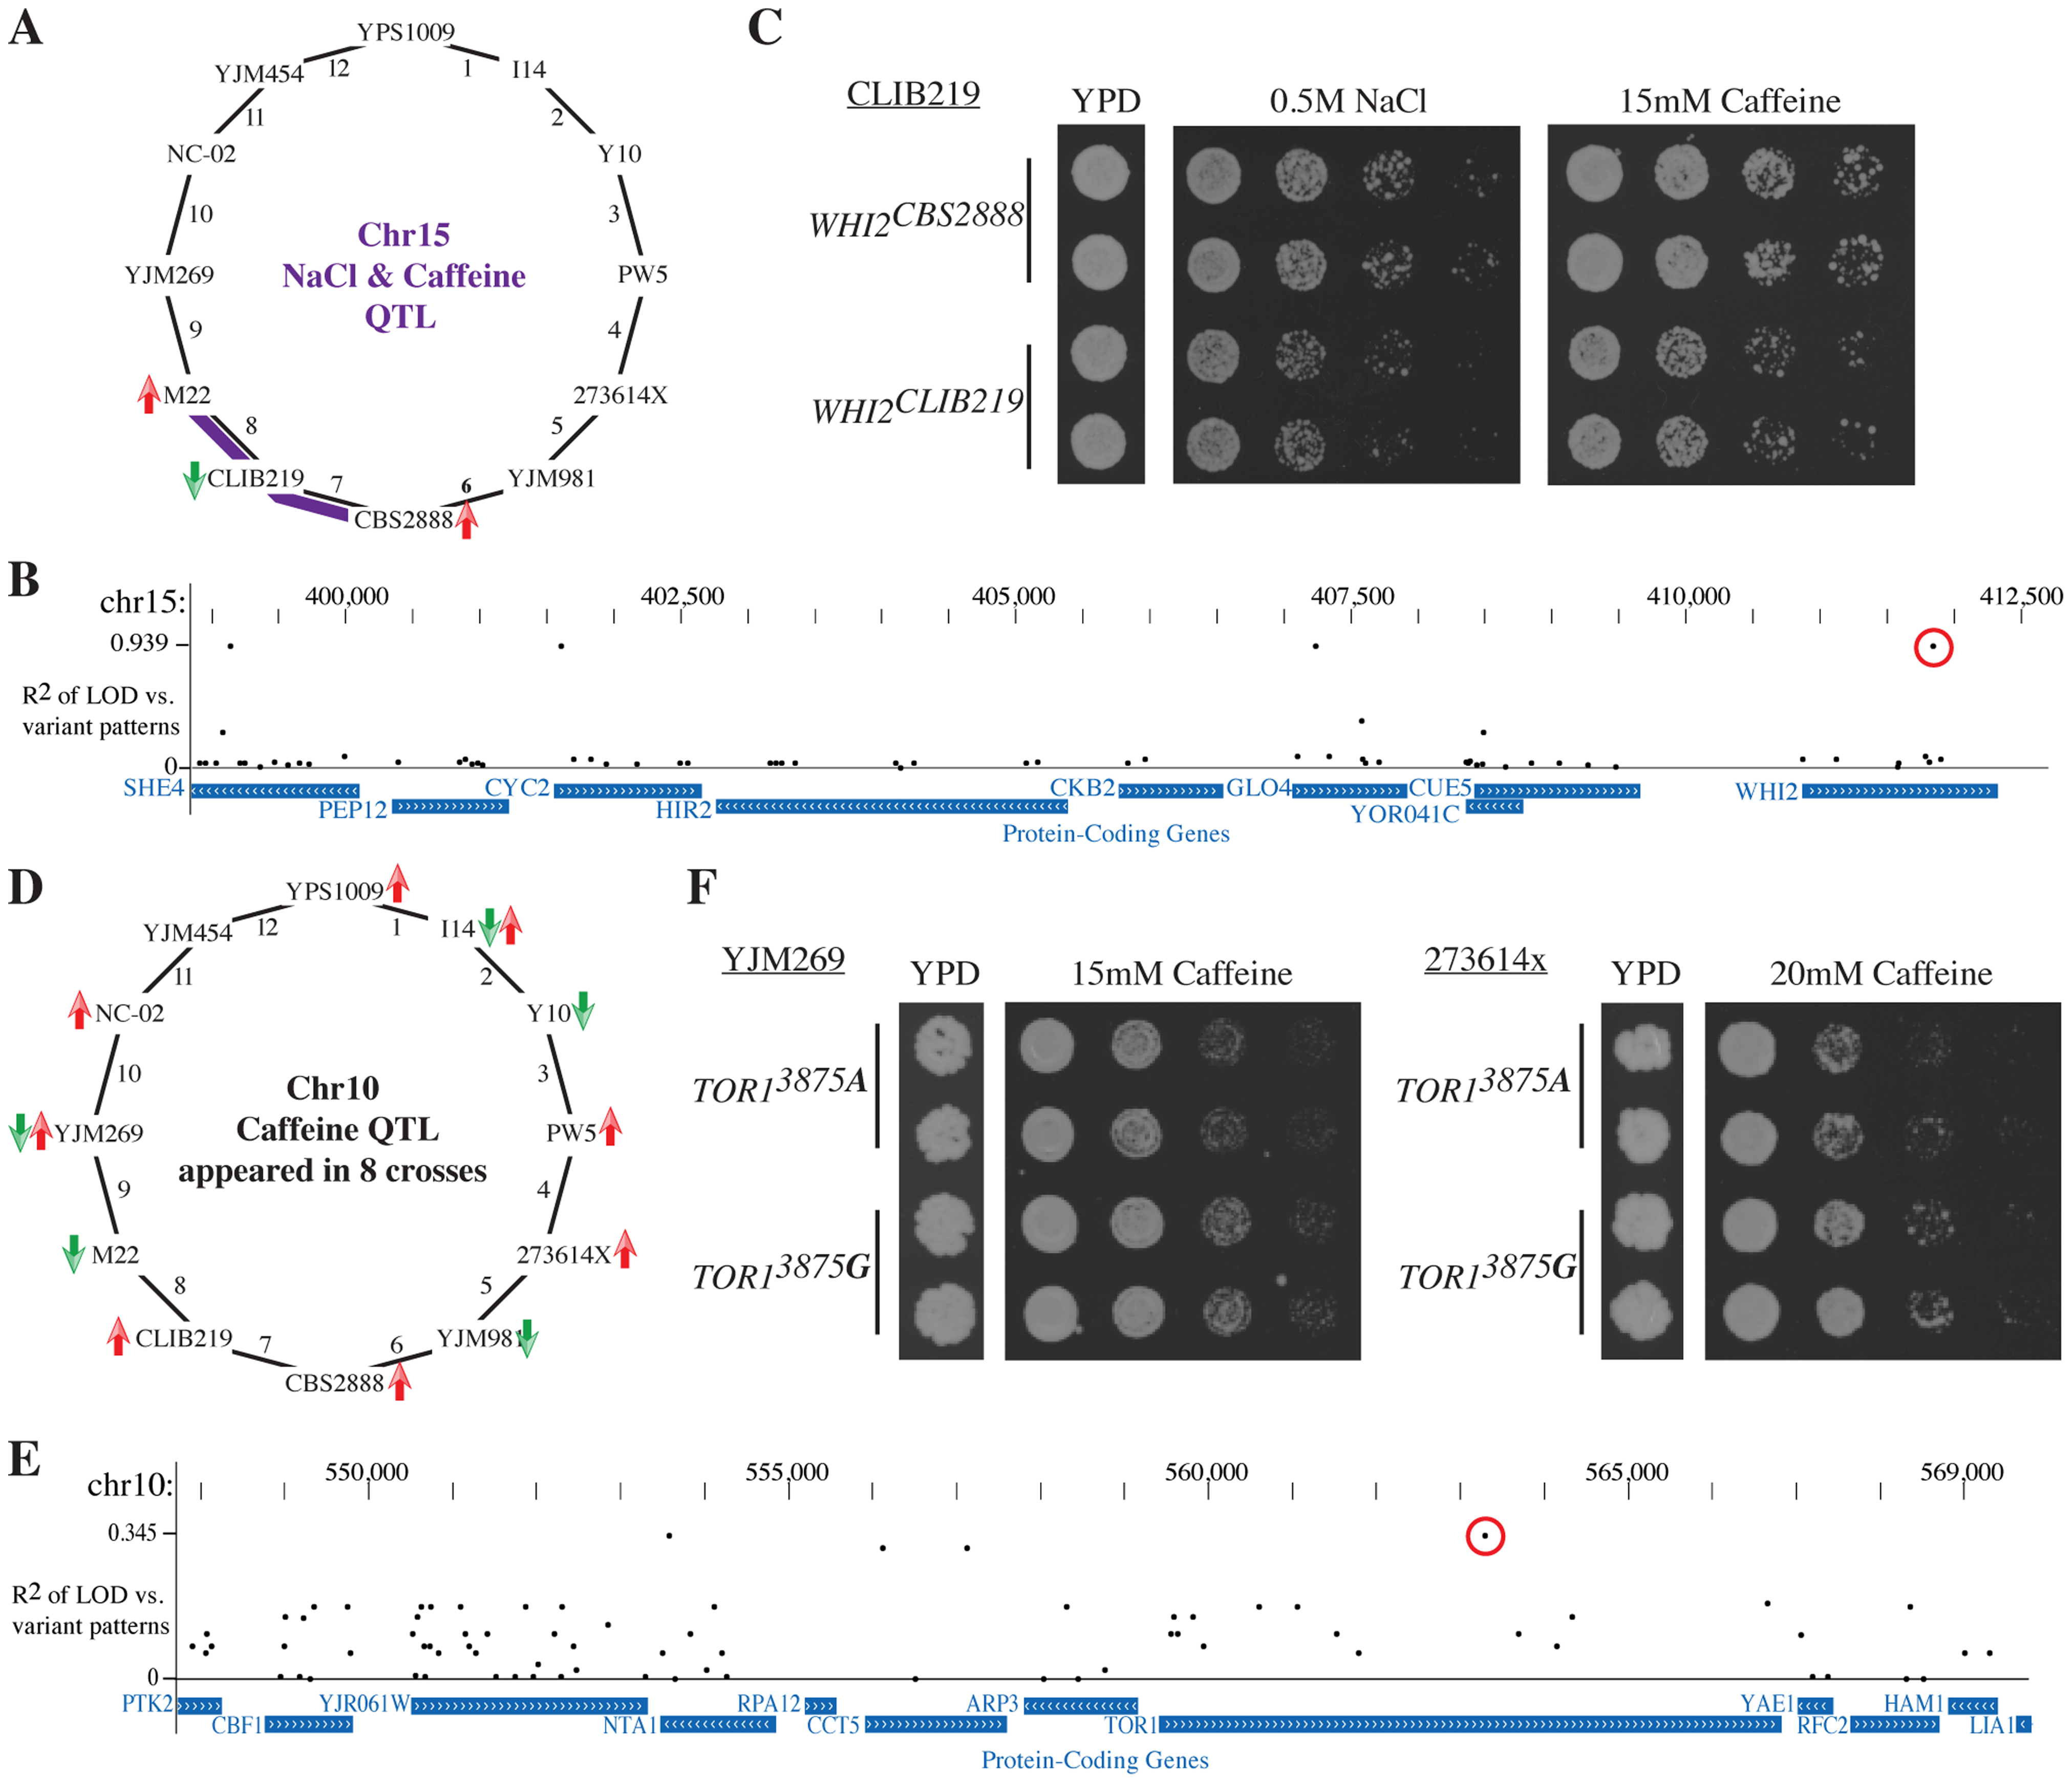 Leveraging the Round Robin design to identify causative variants.